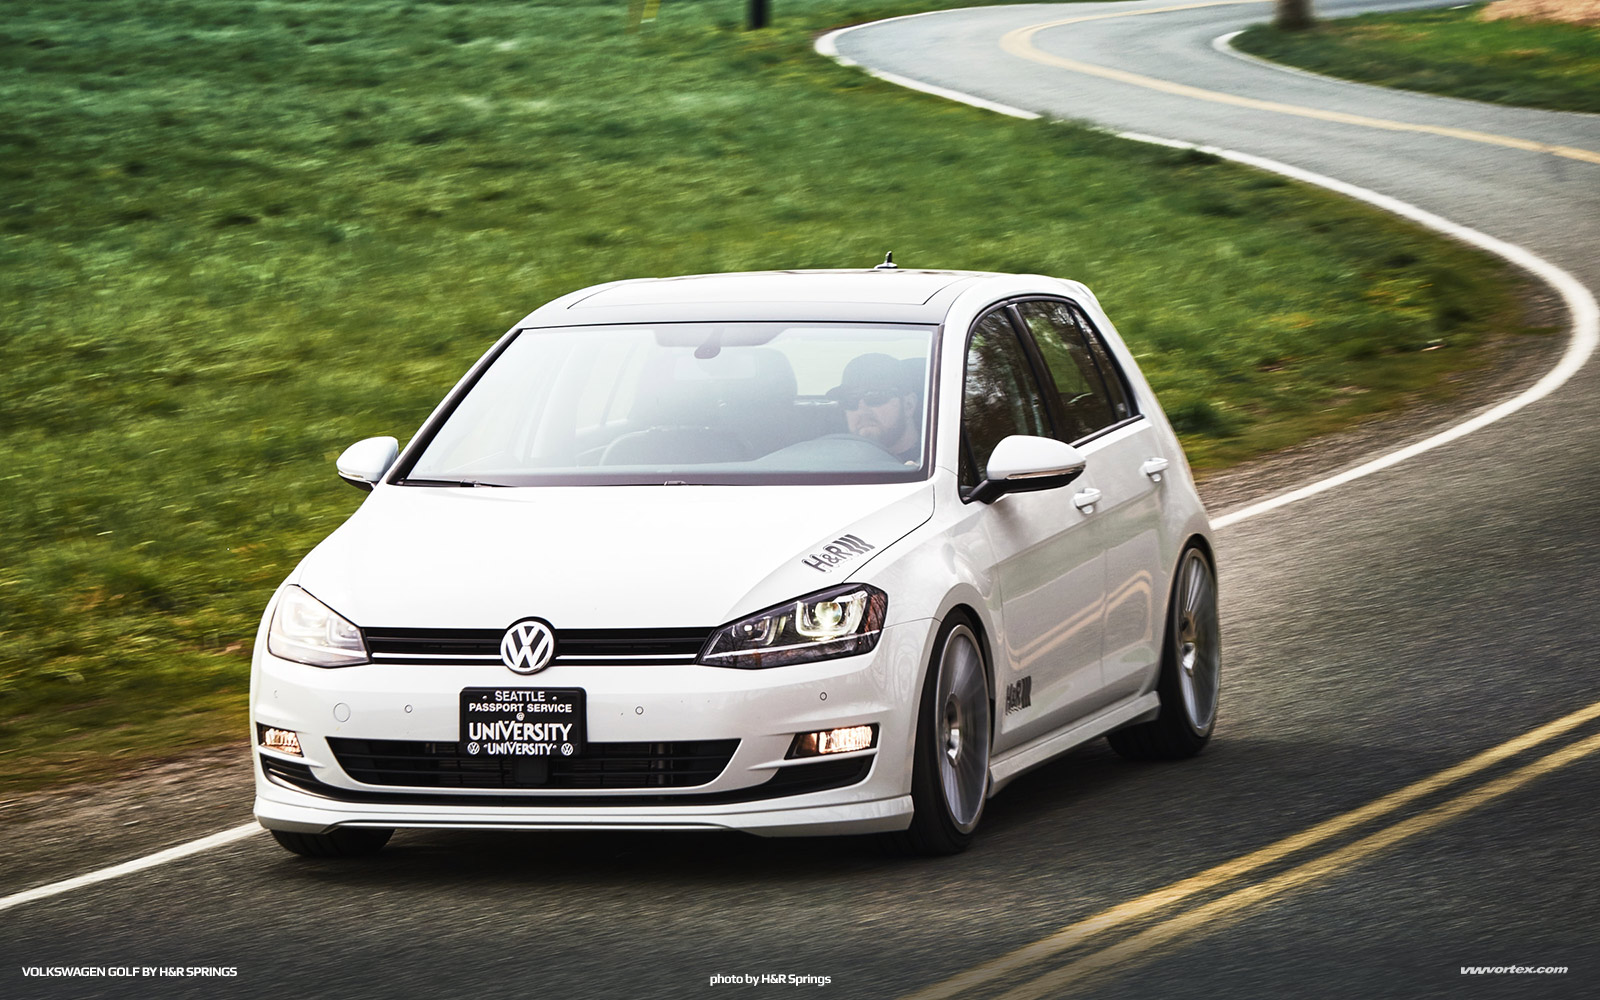 H Amp R Springs Teams With University Volkswagen For New Build